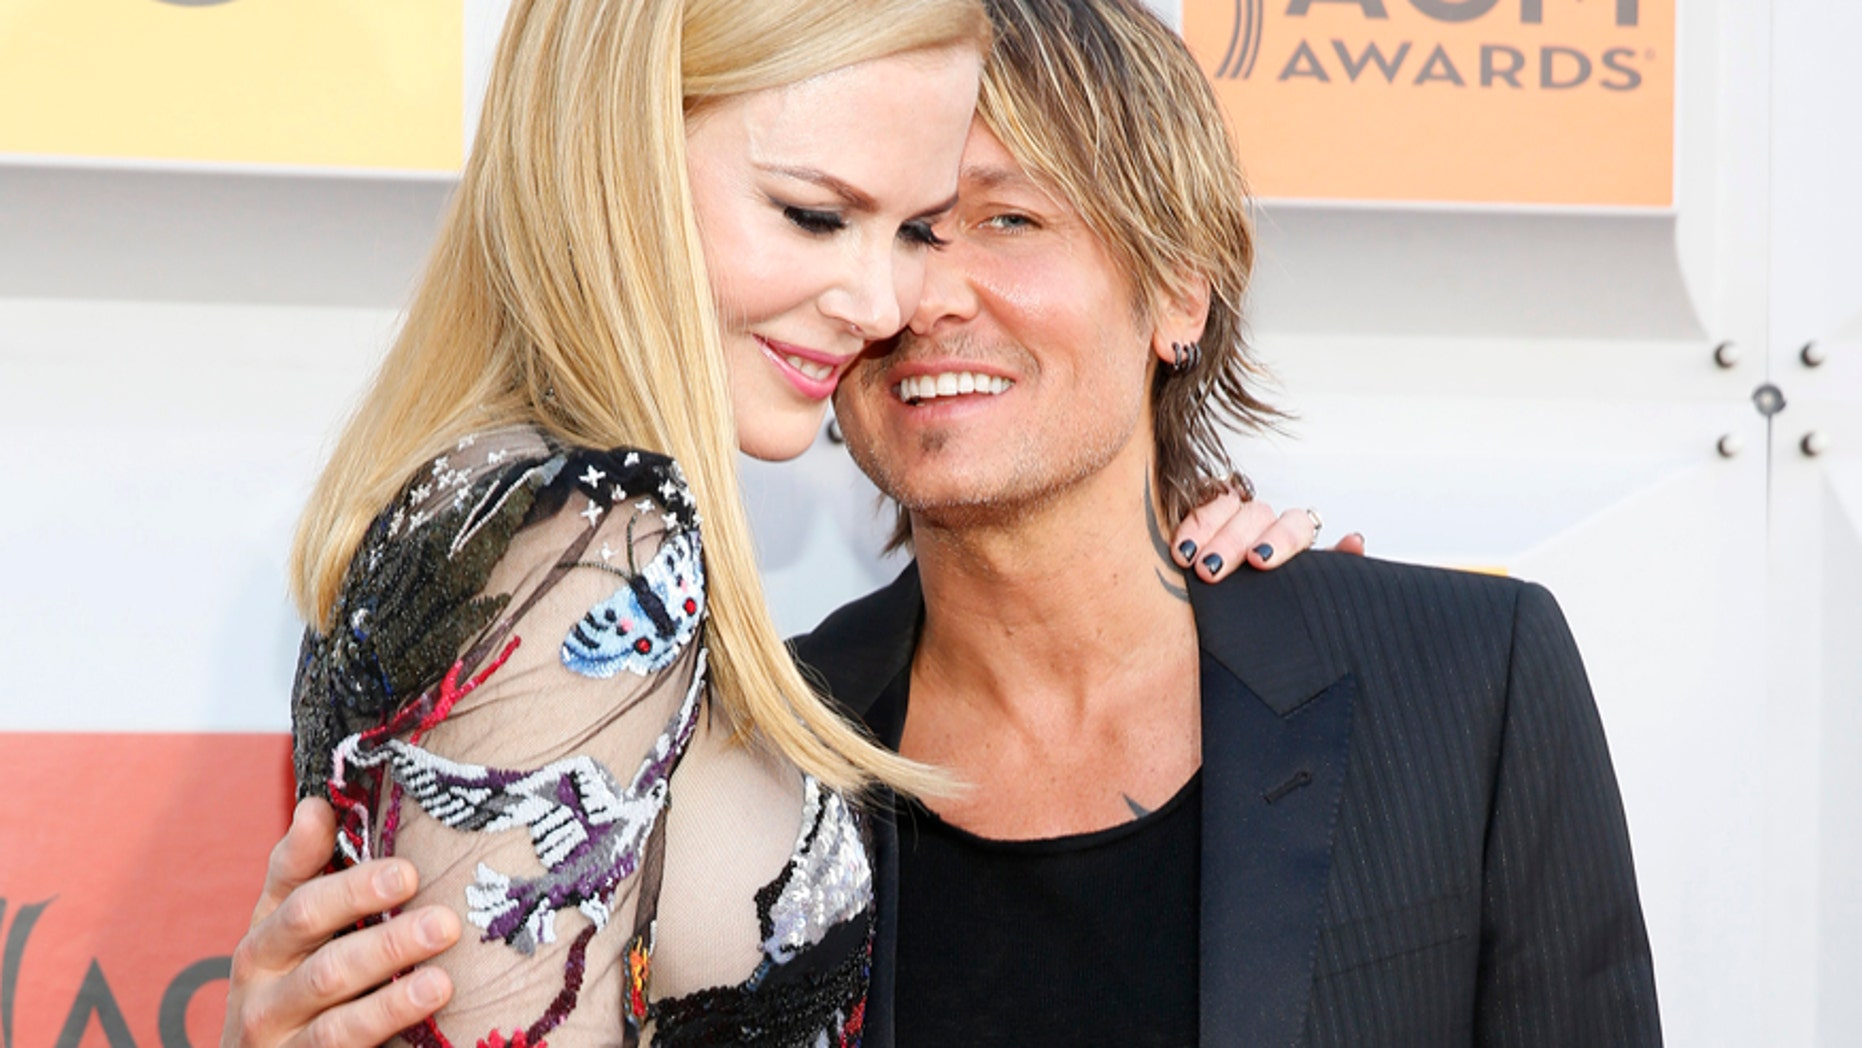 Actress Nicole Kidman And Musician Keith Urban Arrive At The St Academy Of Country Music Awards